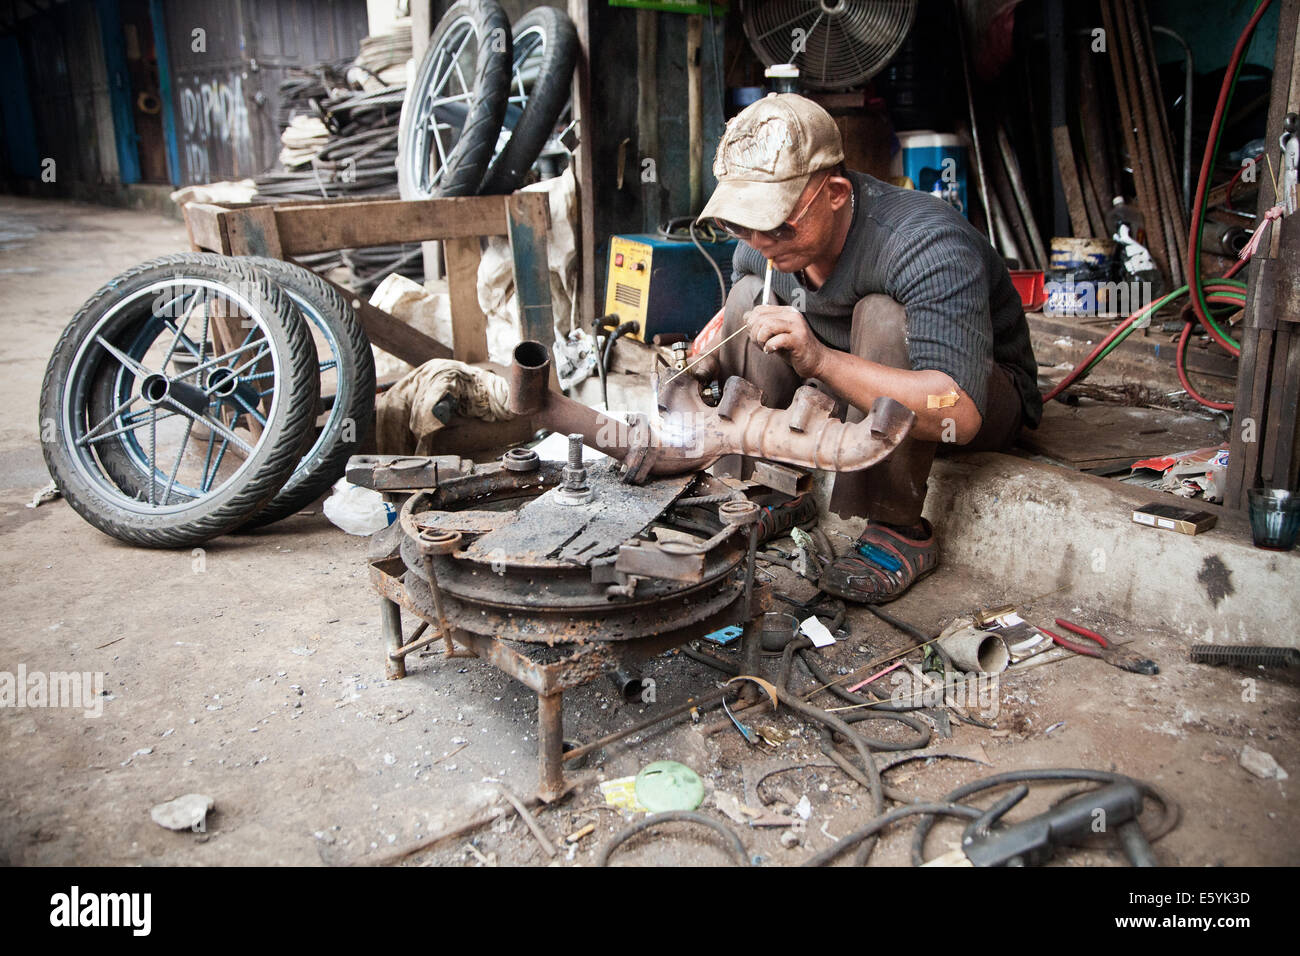 Welder of Indonesian ethnicity working in gritty backstreets of Pontianak in Indonesian Borneo. Undeveloped countries - Stock Image